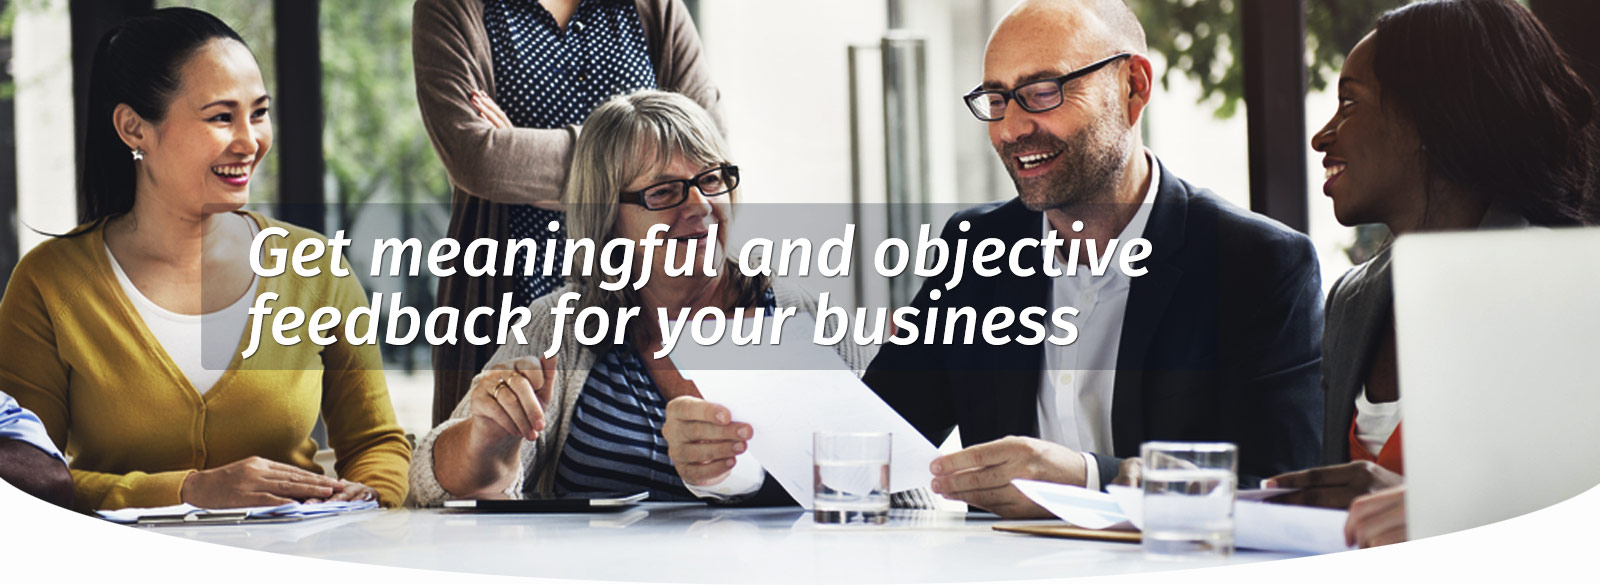 Meaningful and objective feedback for your business